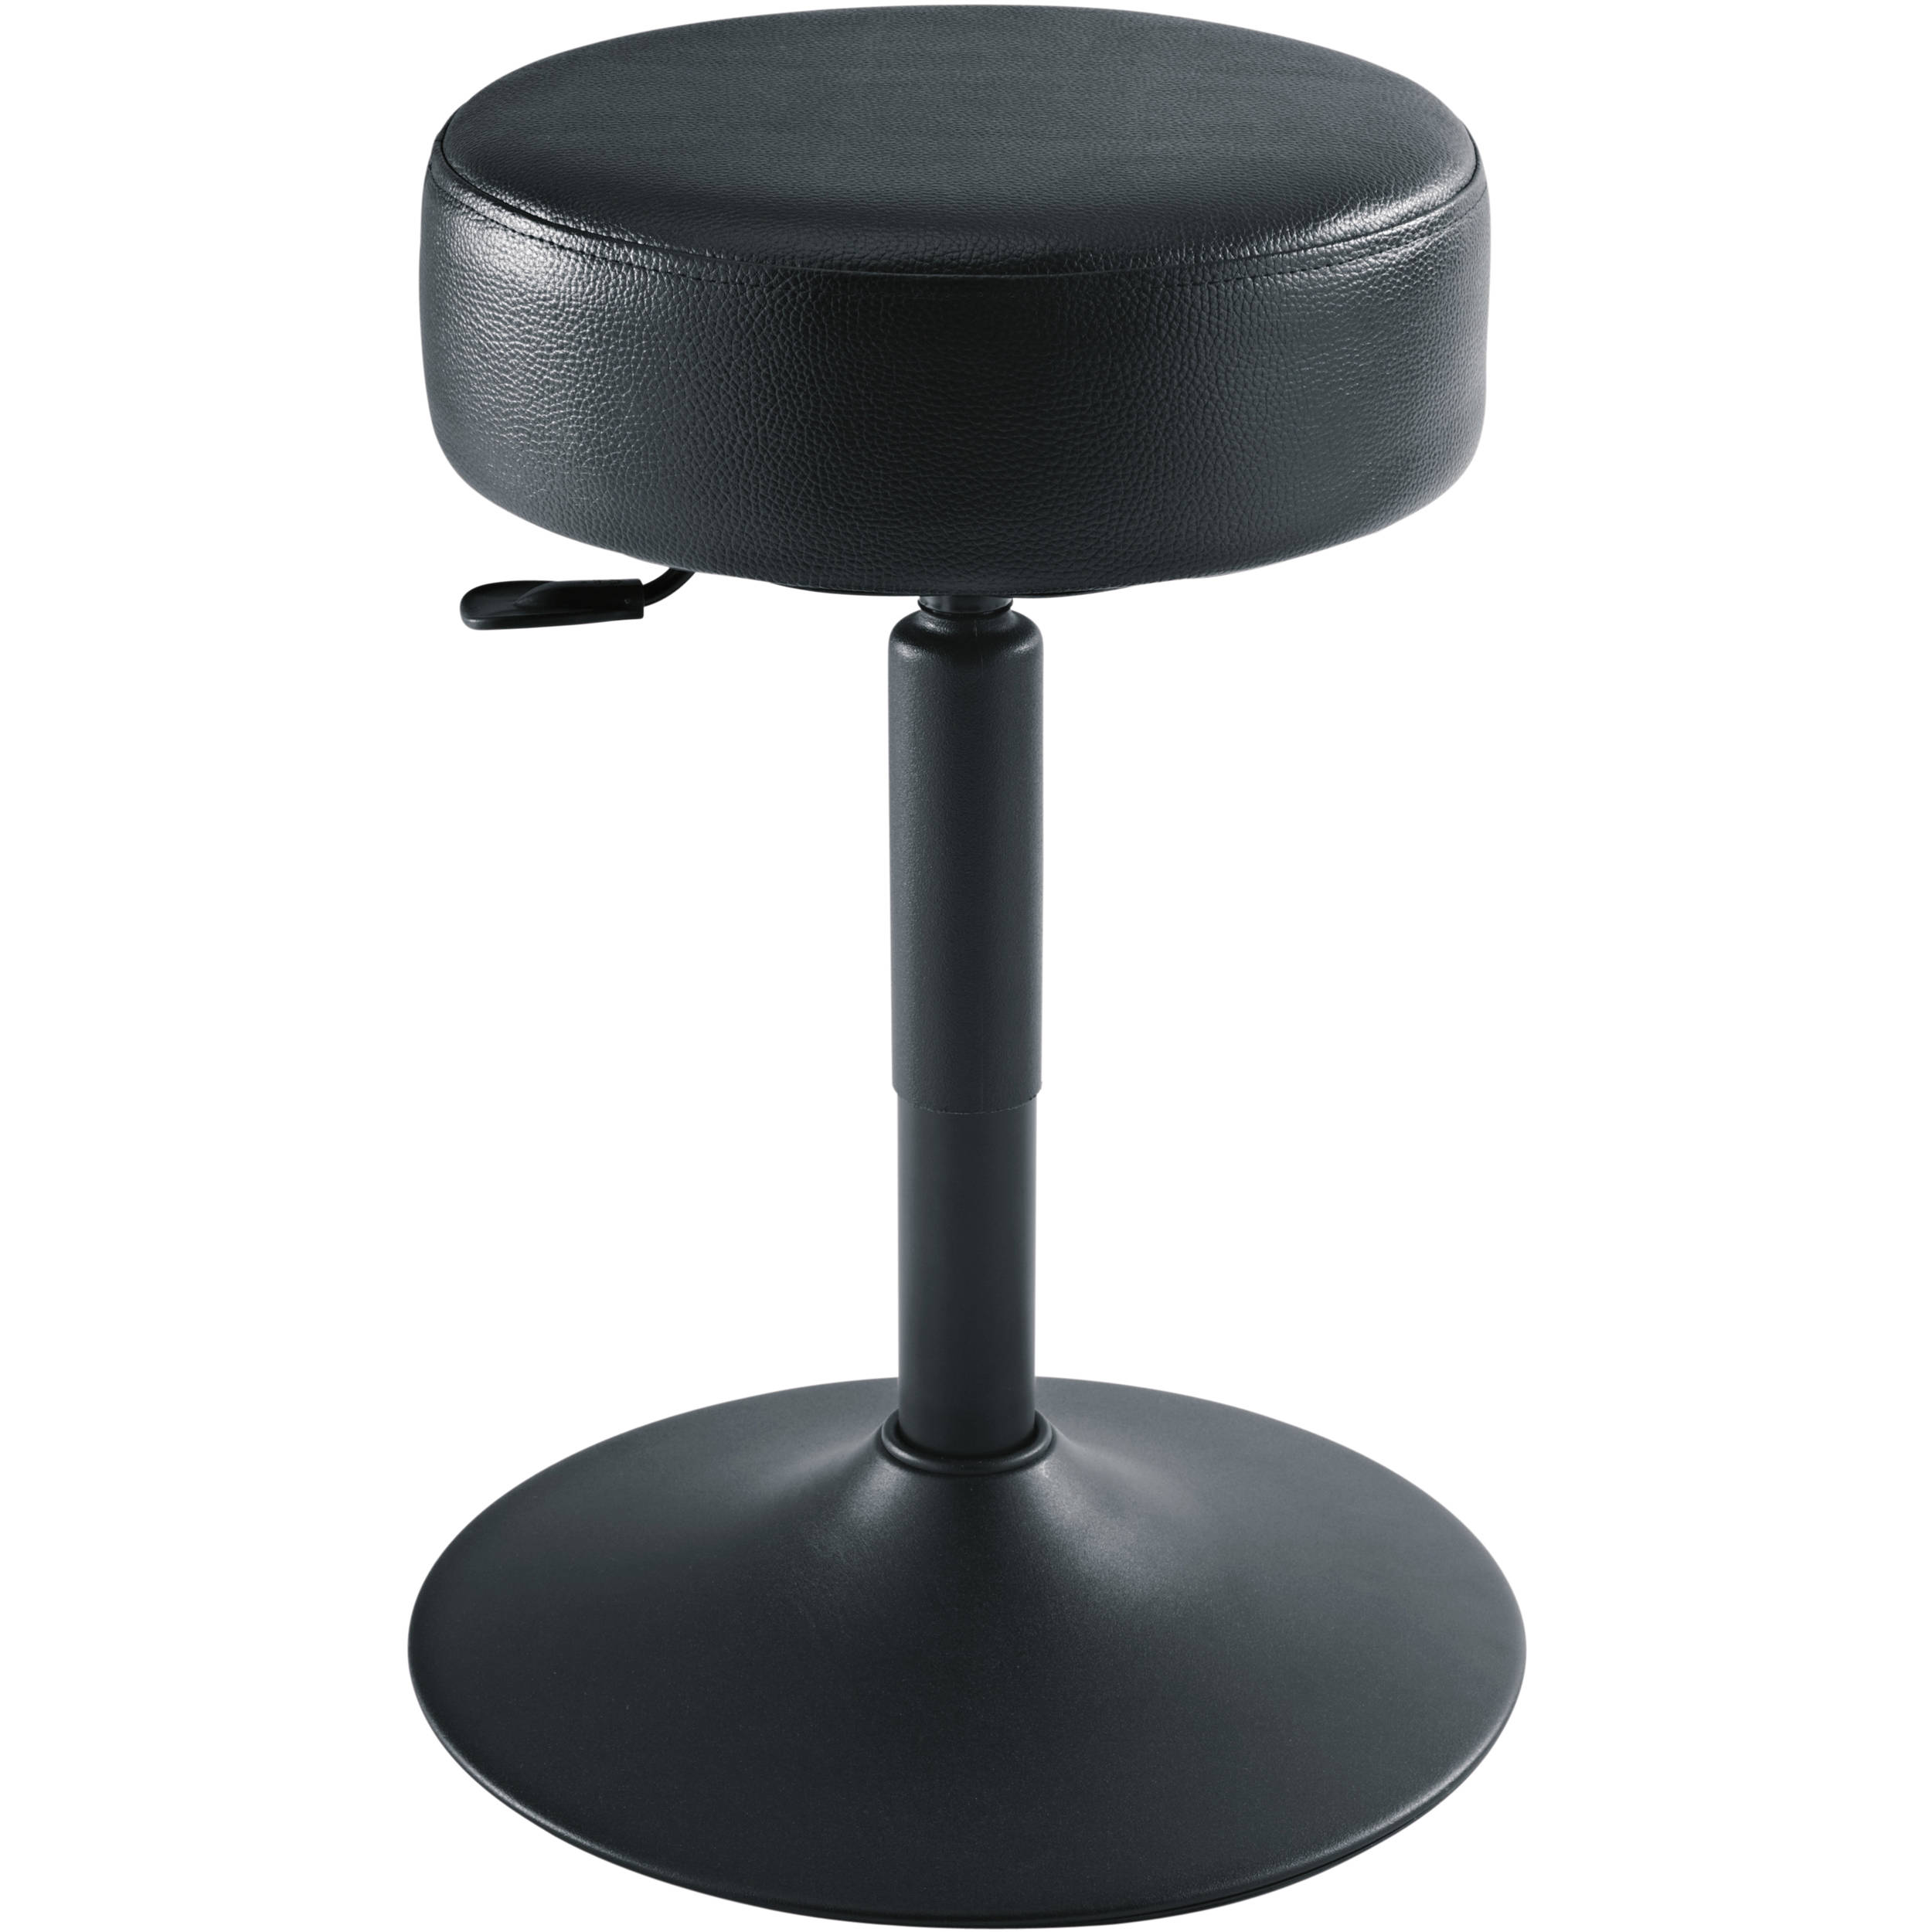 K Amp M 14092 Piano Stool Black 14092 000 55 B Amp H Photo Video